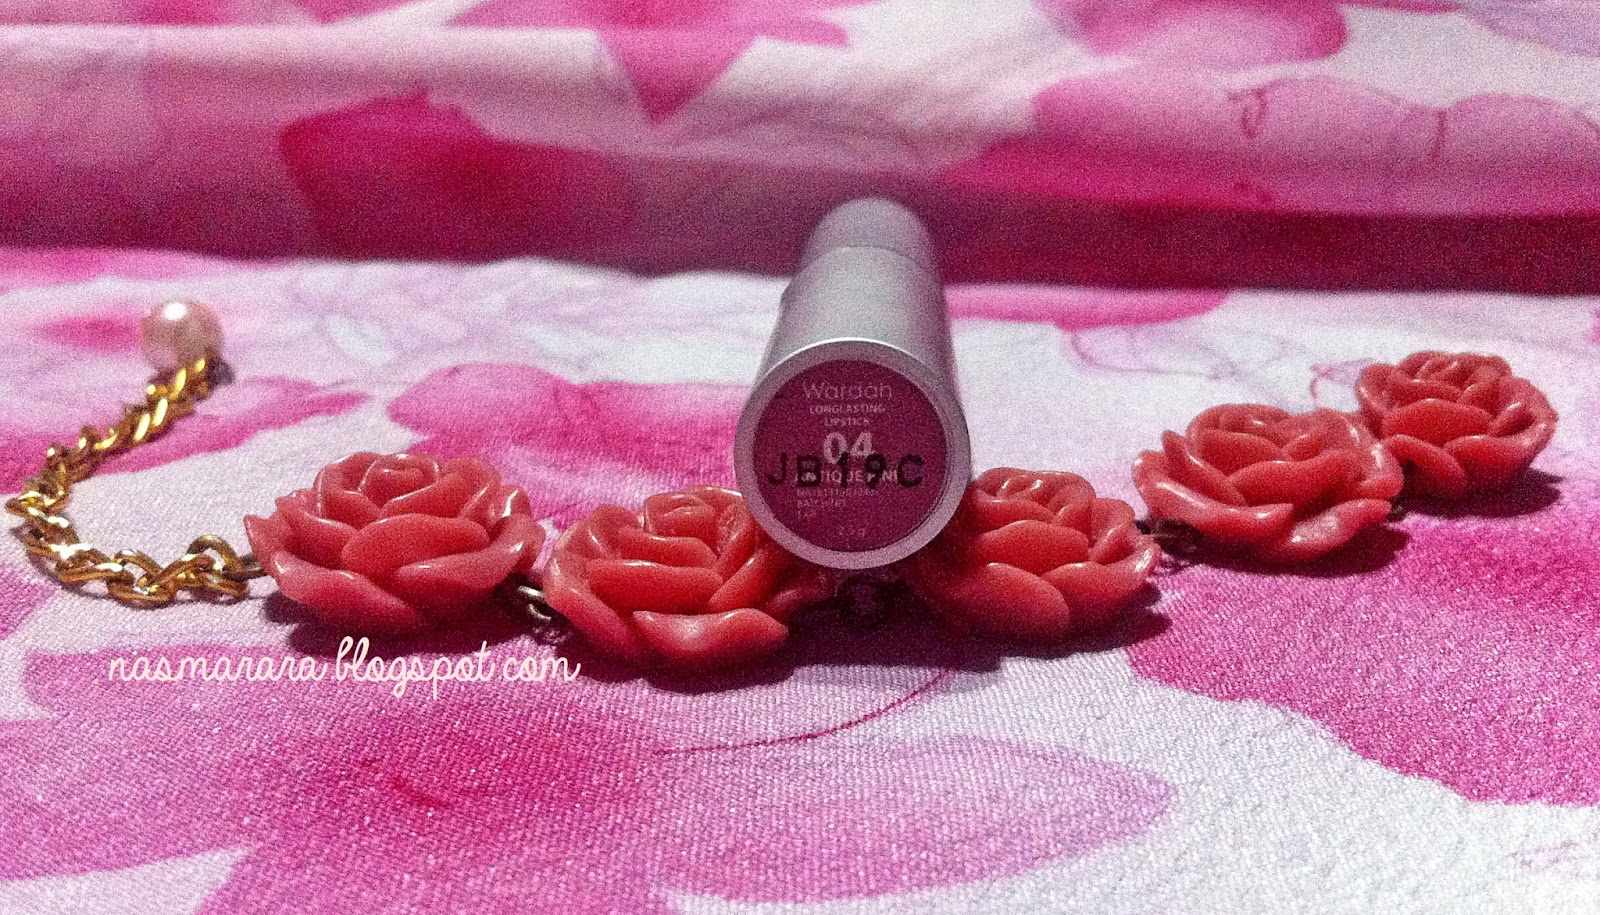 A Beauty Blog by Nur Asmara: Review : Wardah Longlasting ...